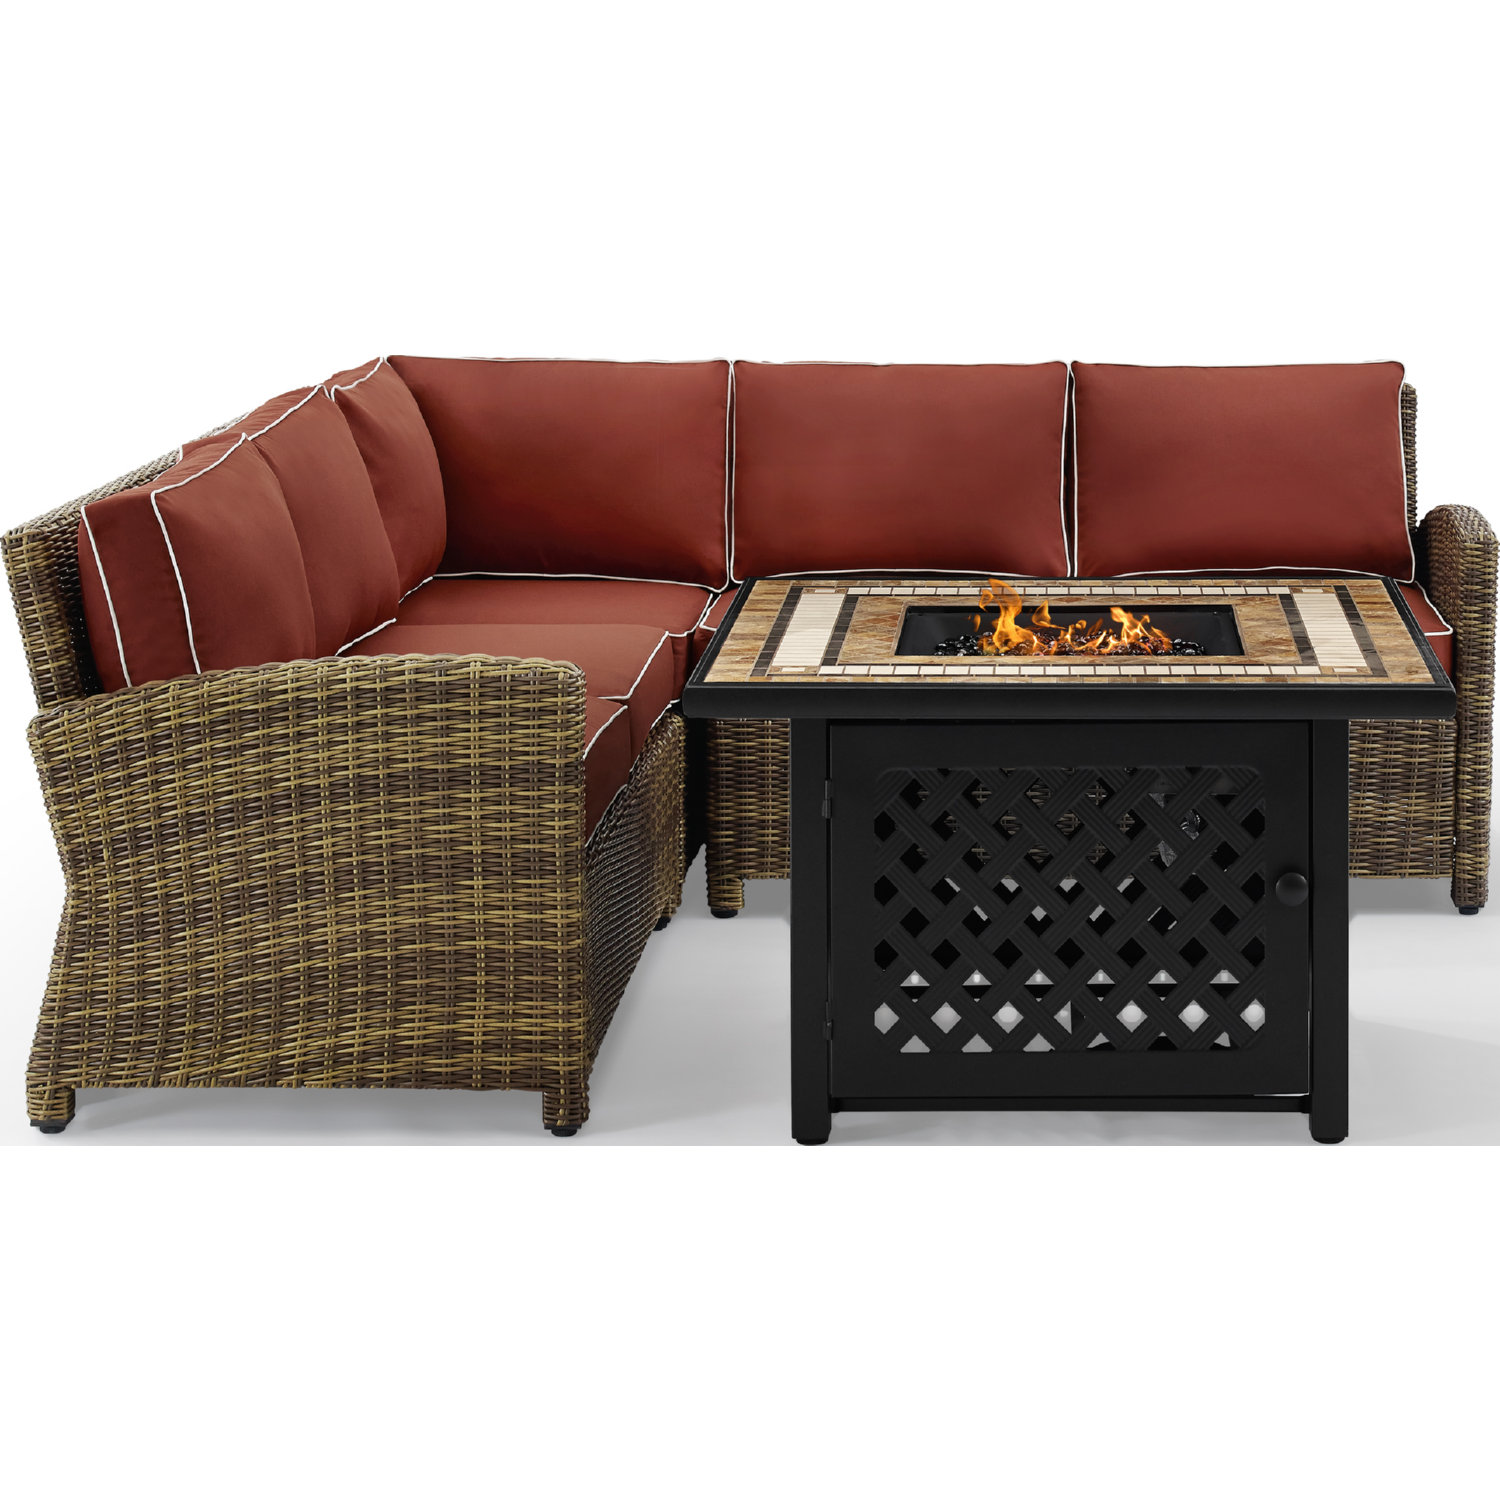 Bradenton 4 Piece Outdoor Sectional Sofa Set in PE Wicker w/ Sangria  Cushions by Crosley